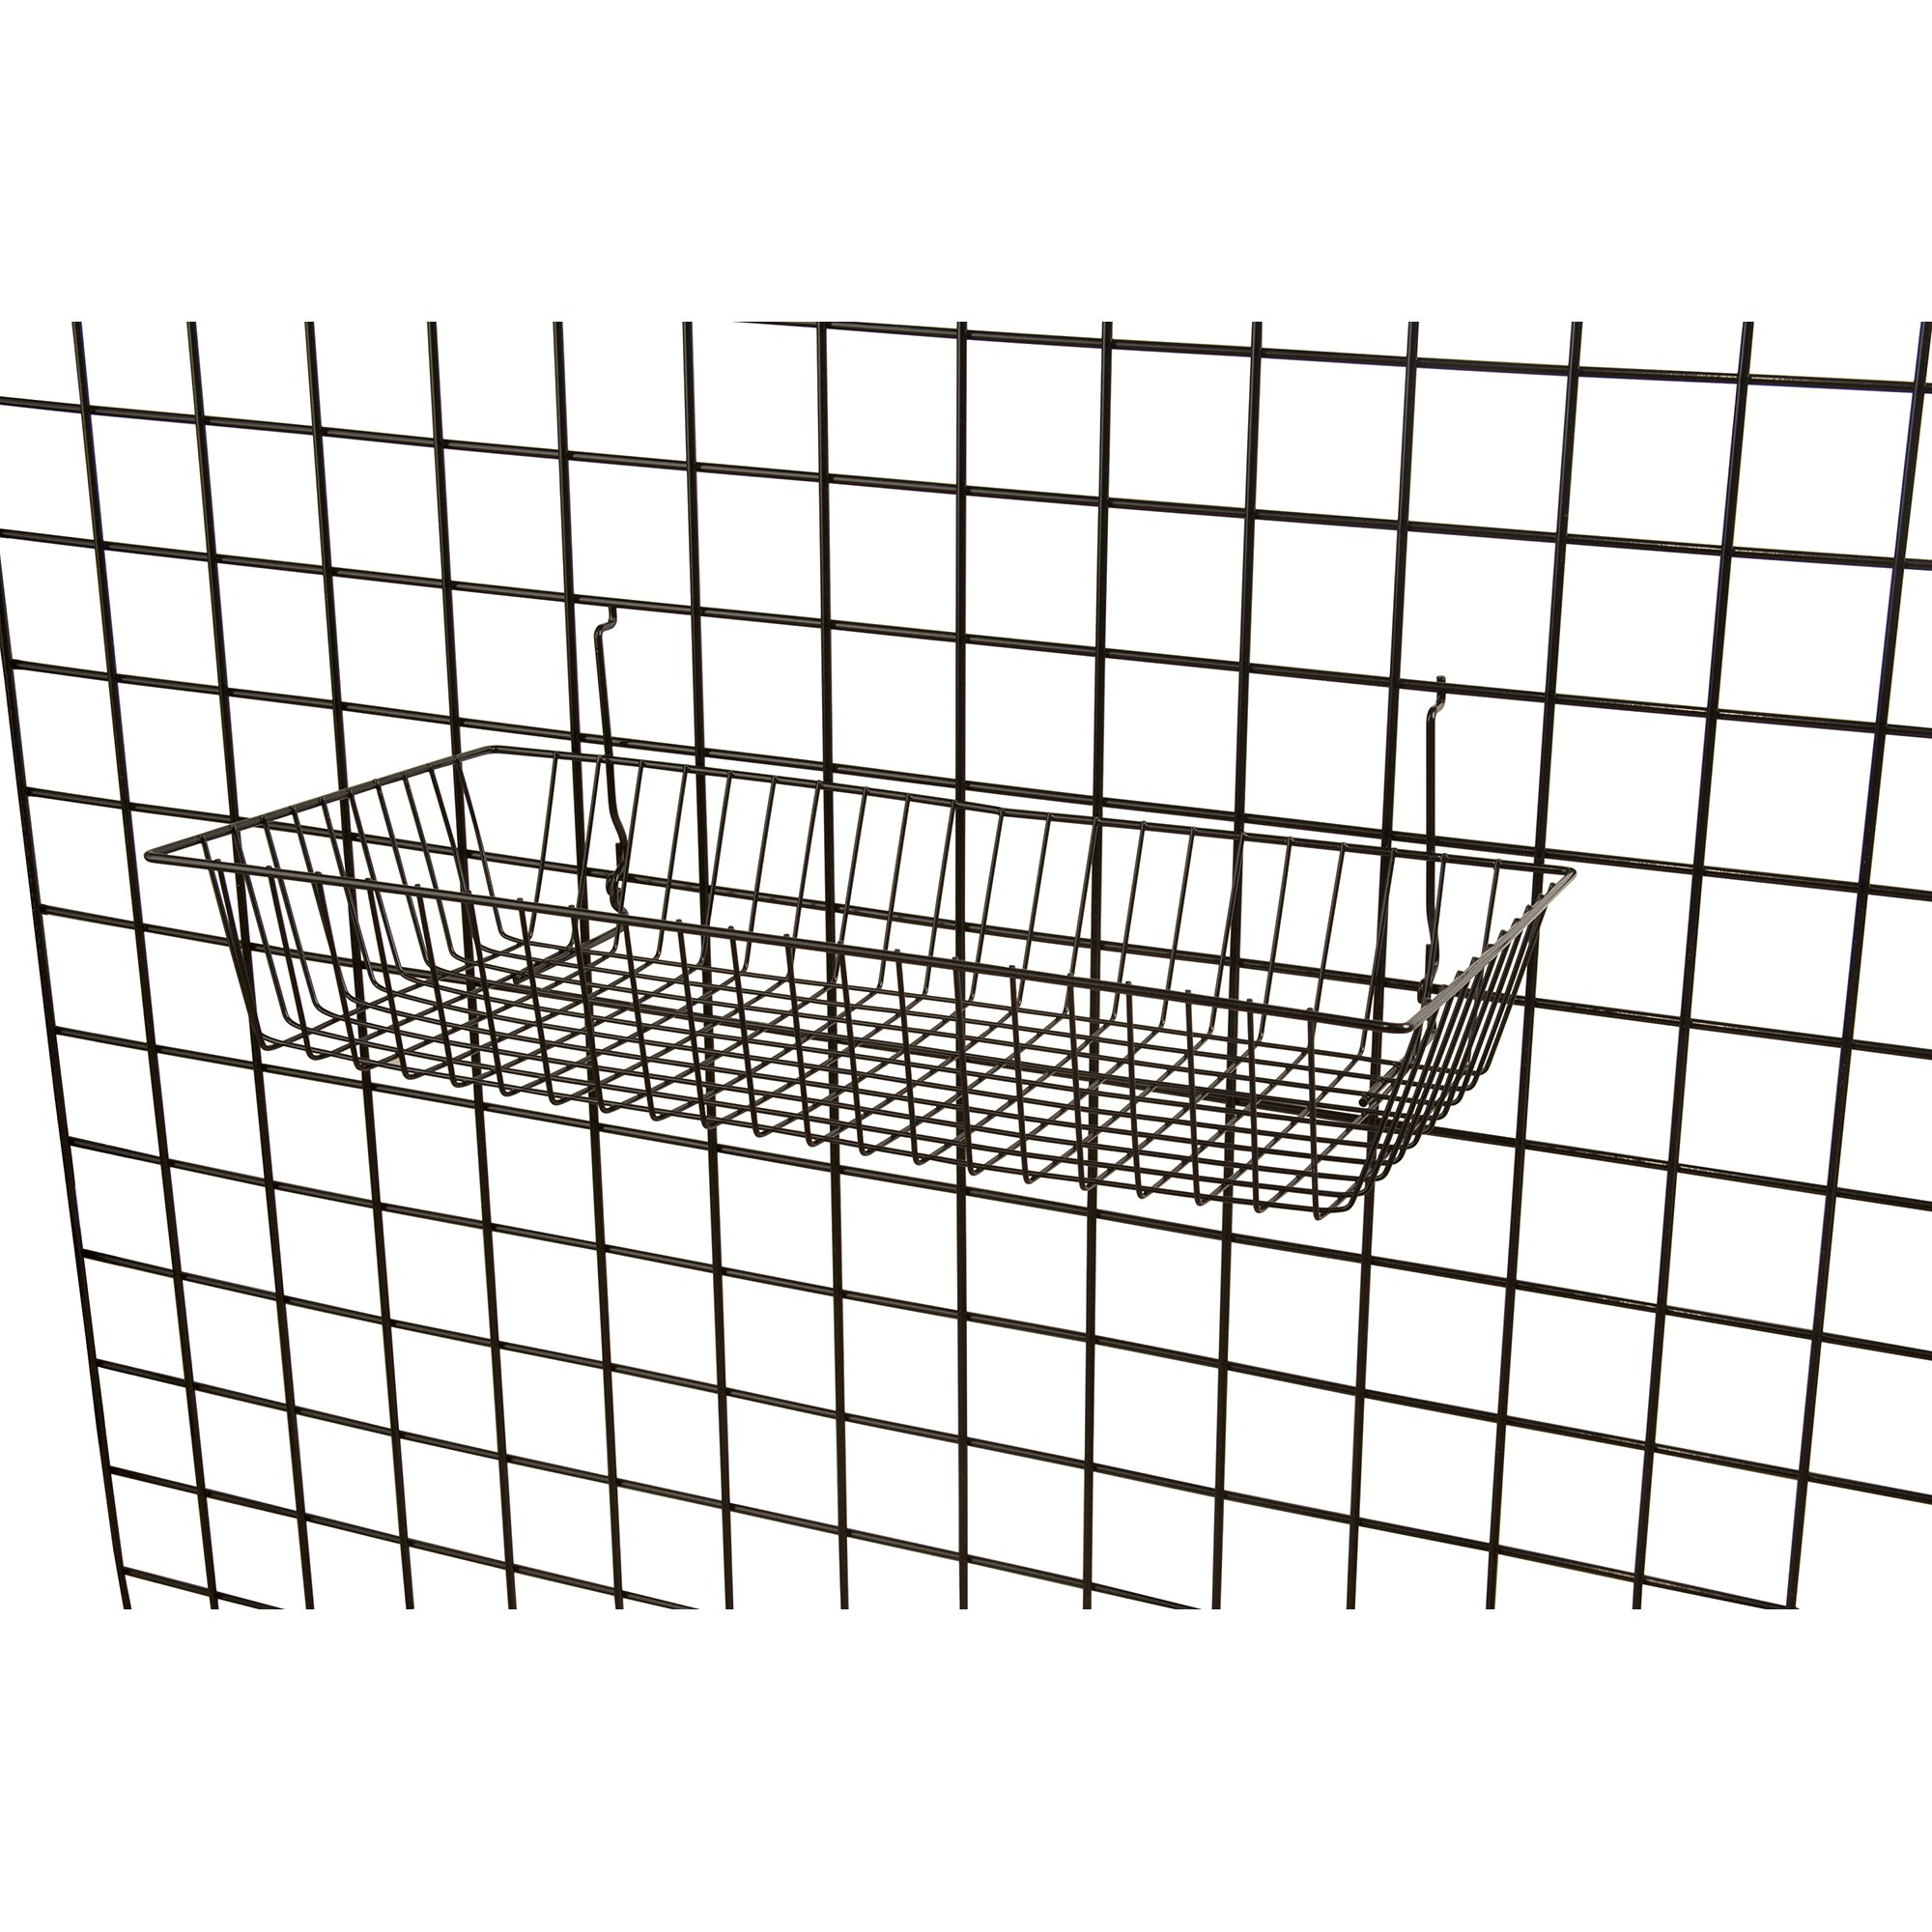 """Black Wire Baskets for Slatwall, Gridwall or Pegboard (Set of 2), Merchandiser Baskets, Perfect for Retailers or Home Use, Black Vinyl Coated Wire Baskets, 24"""" L x 12"""" D x 4"""" H, Shallow Baskets by Only Garment Racks (Image #1)"""